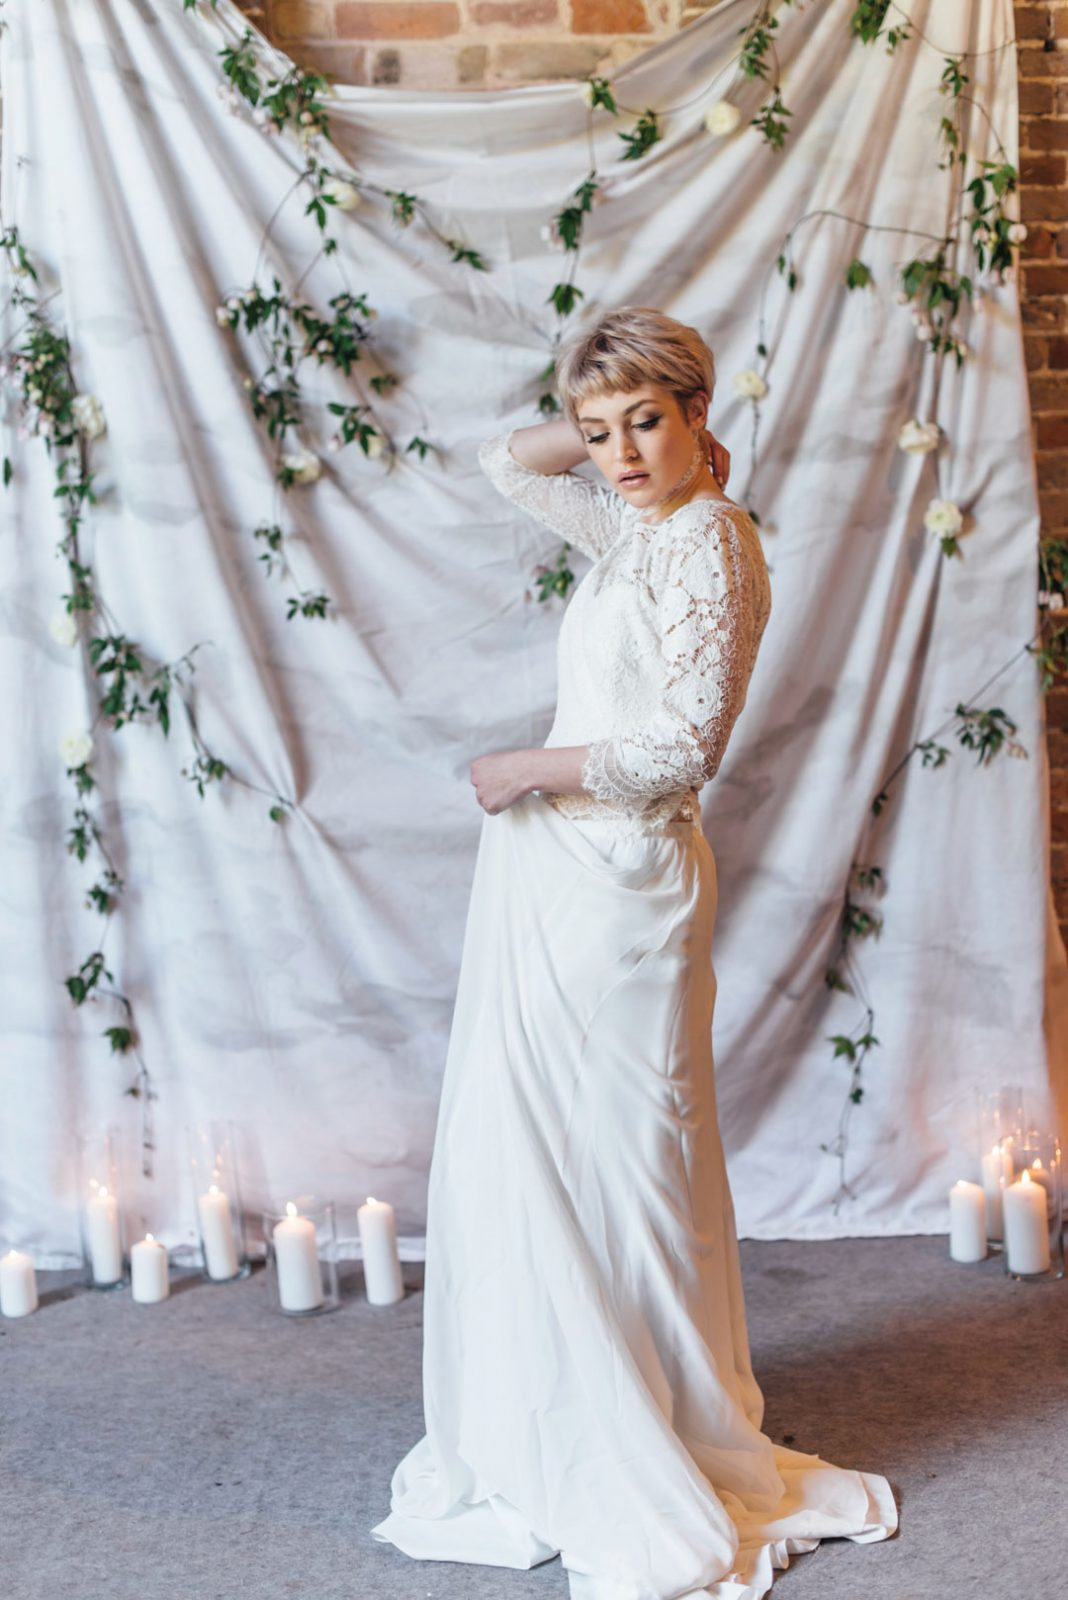 BethMoseleyPhotography_WhiteonWhite-123FINAL1080px wide-26